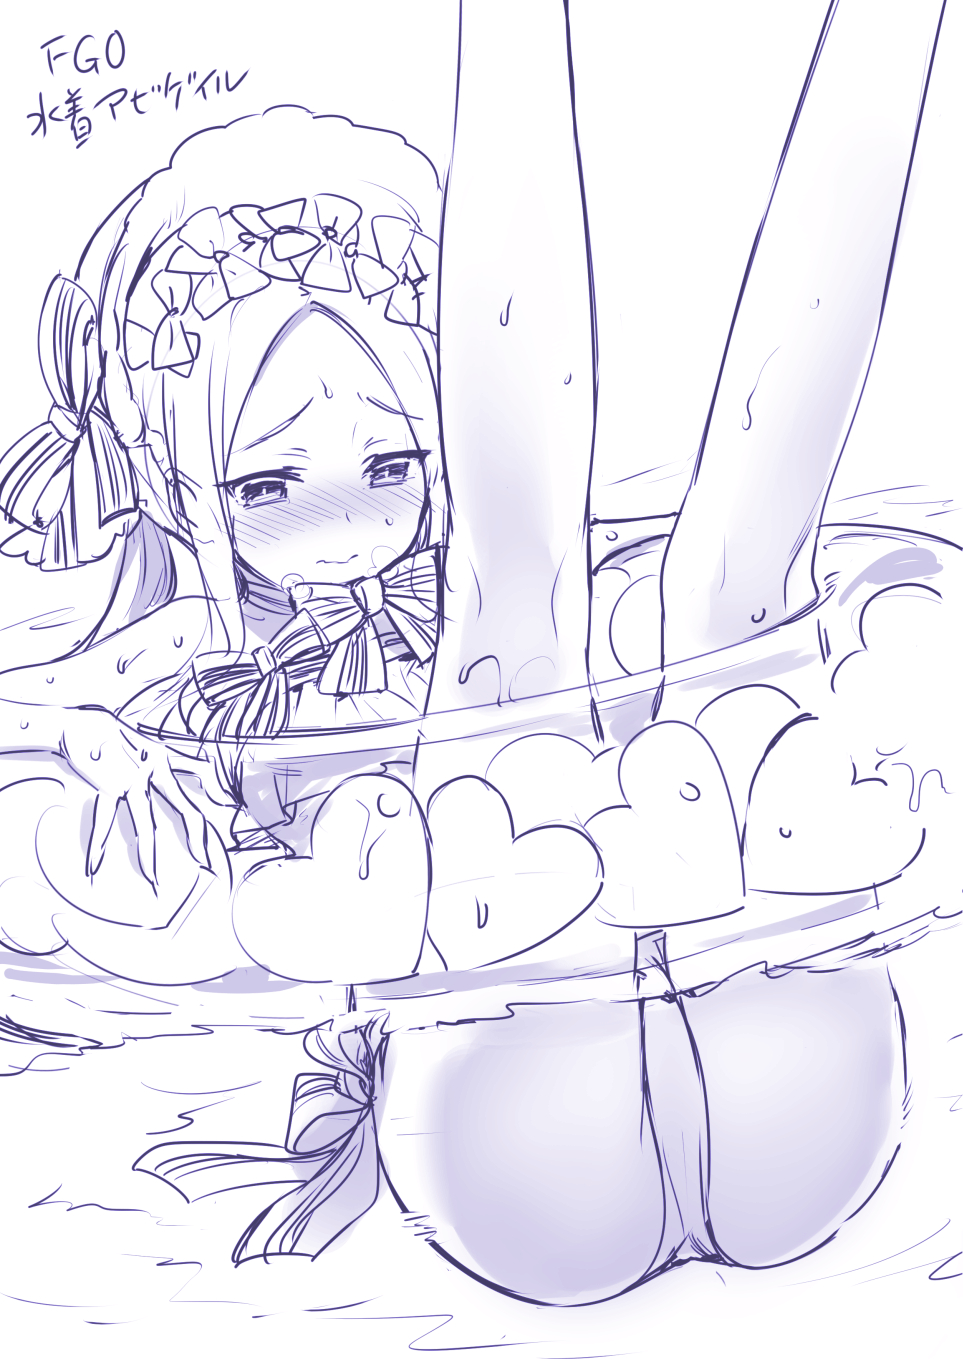 1girl abigail_williams_(swimsuit_foreigner)_(fate) ass blush bonnet commentary_request fate/grand_order fate_(series) forehead highres hisasi innertube long_hair partially_submerged sketch solo swimsuit wet